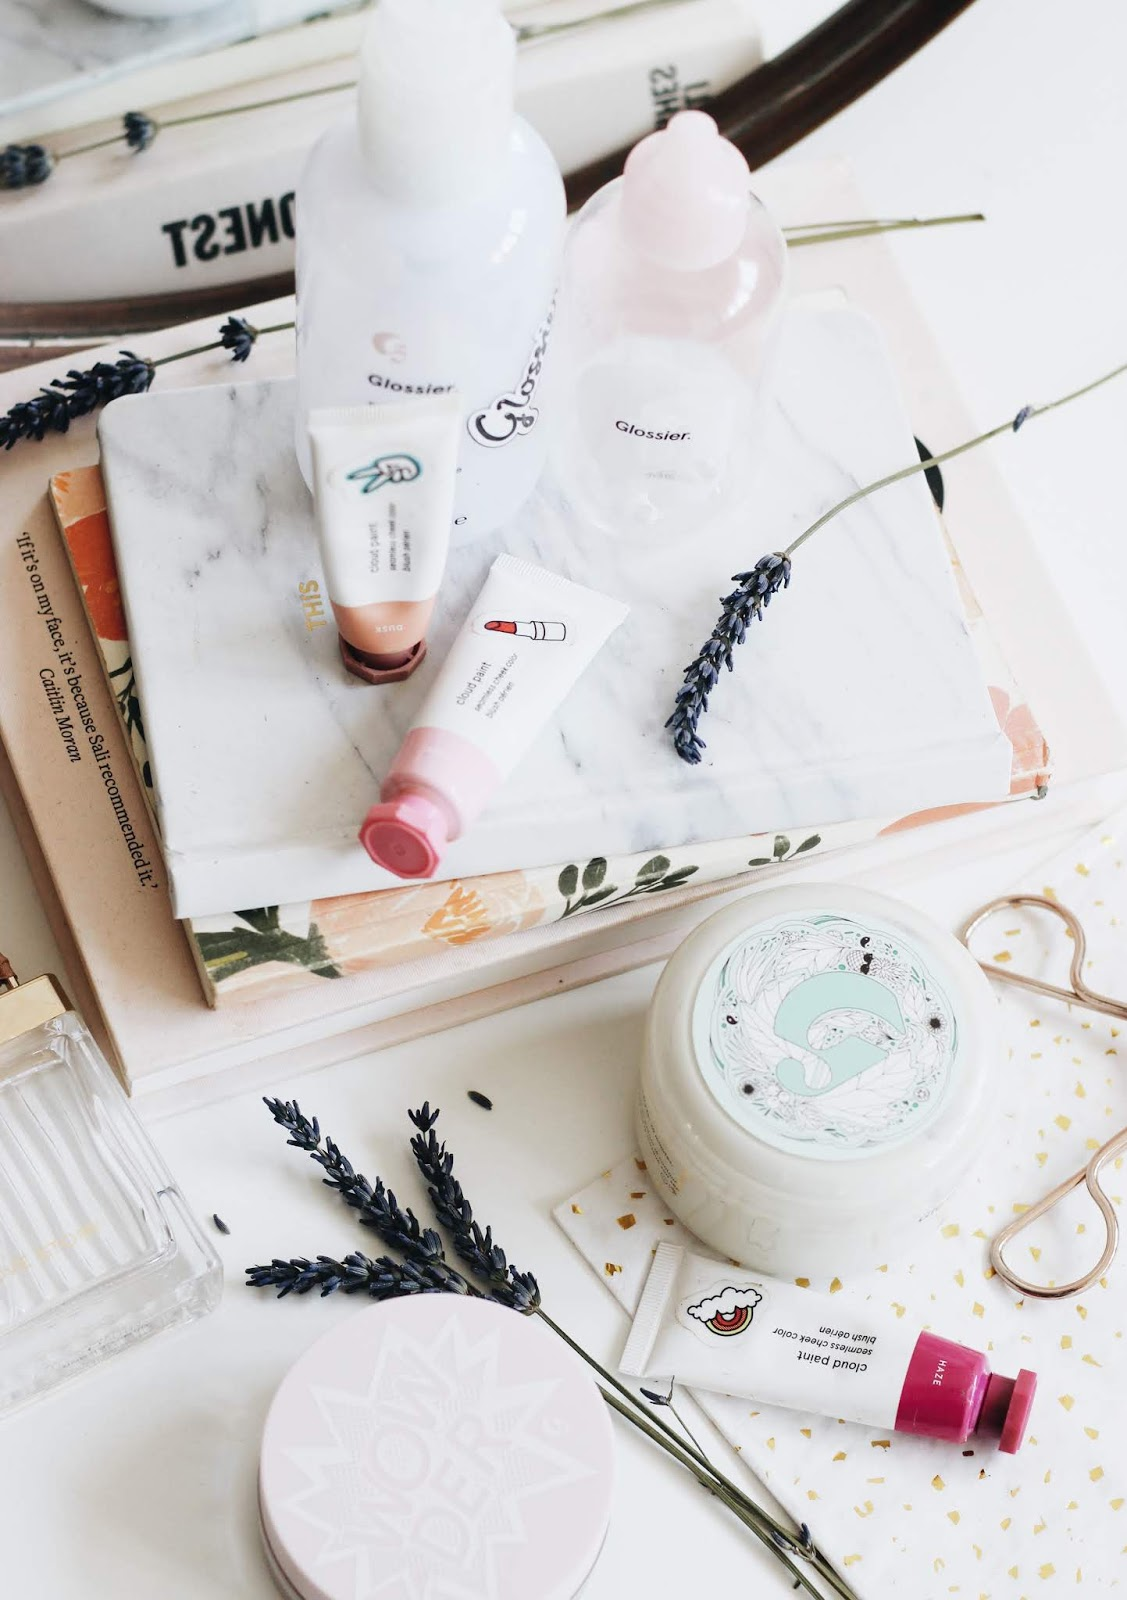 Glossier Beauty Recommendations